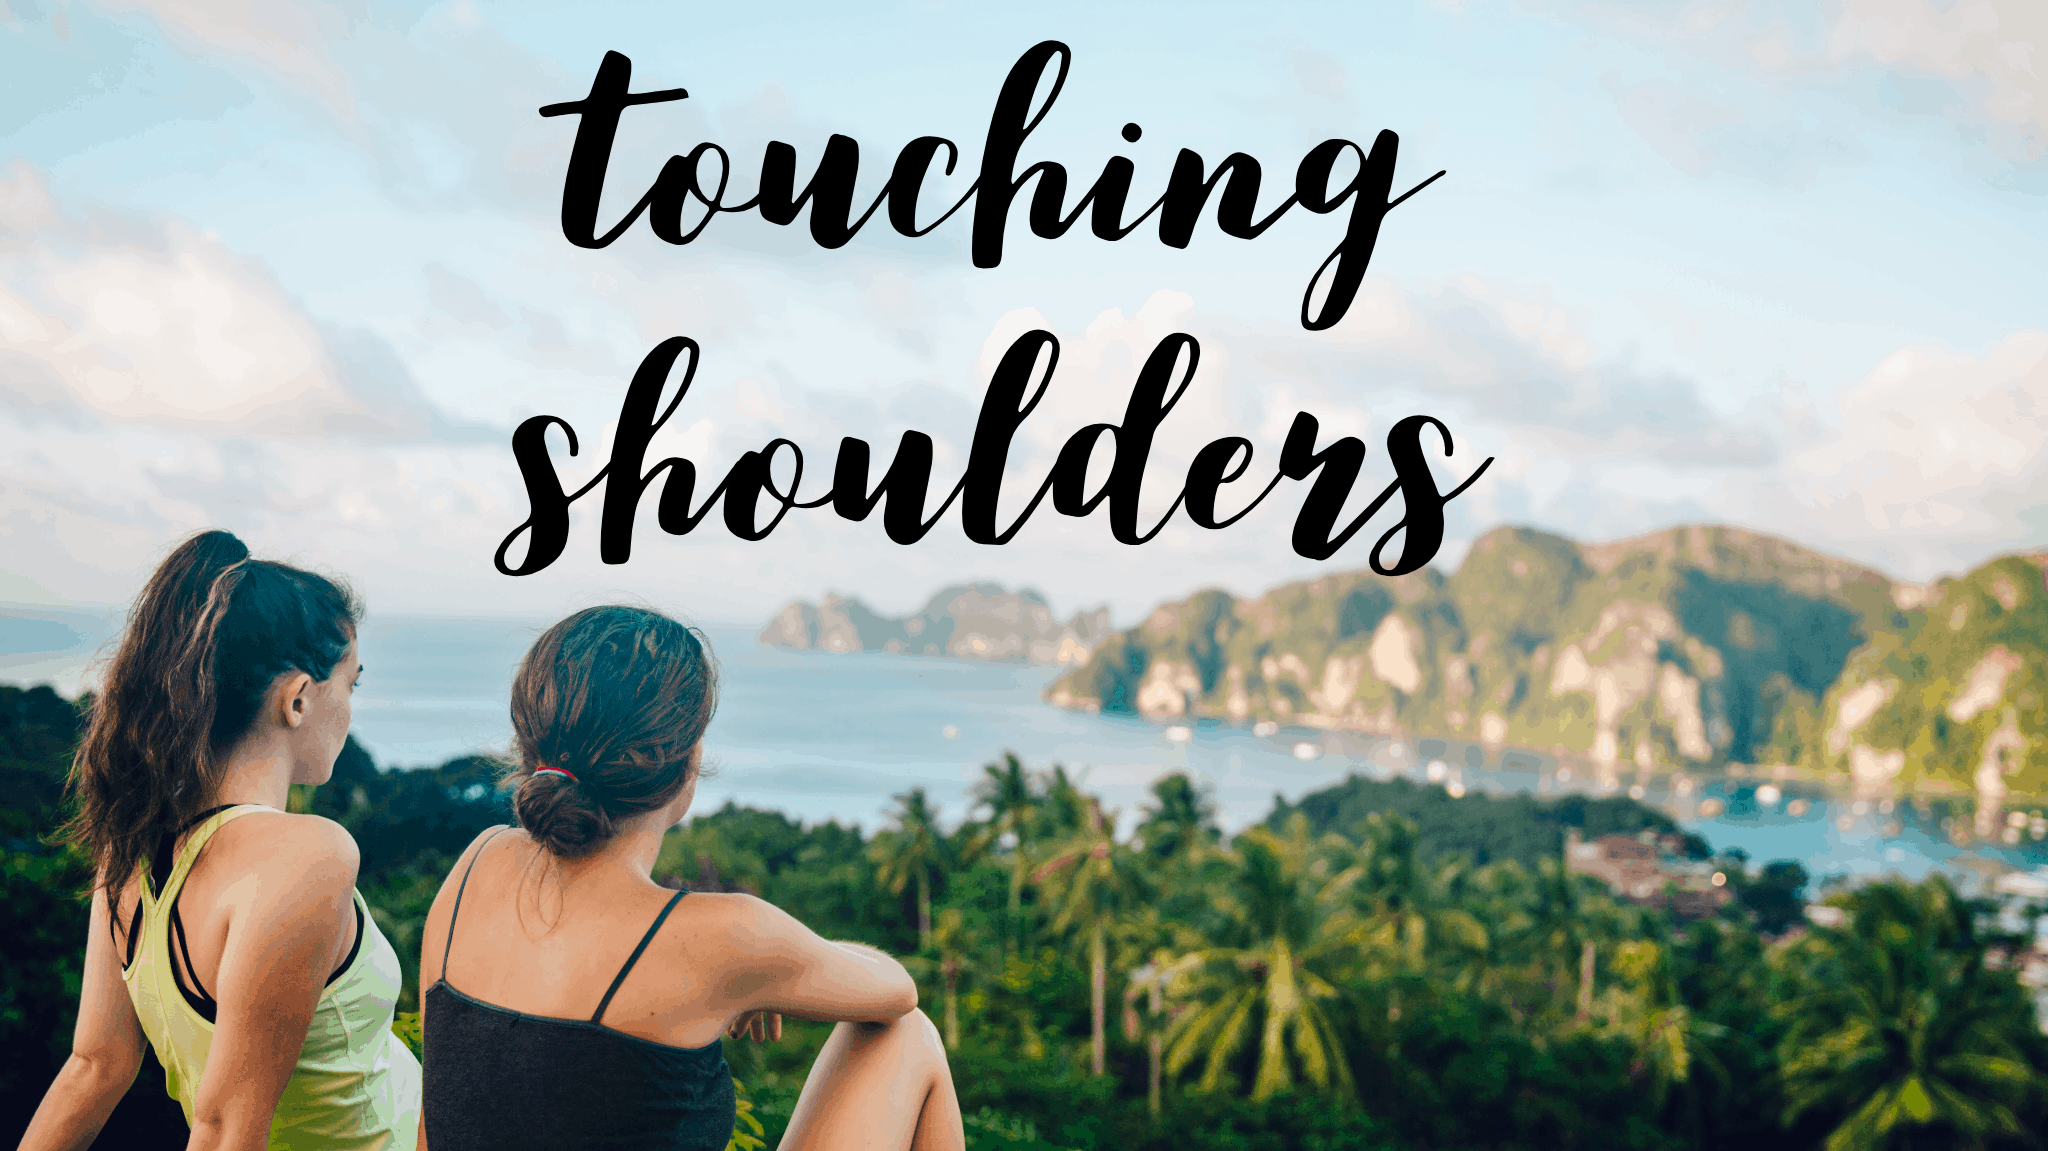 Touching Shoulders Poem